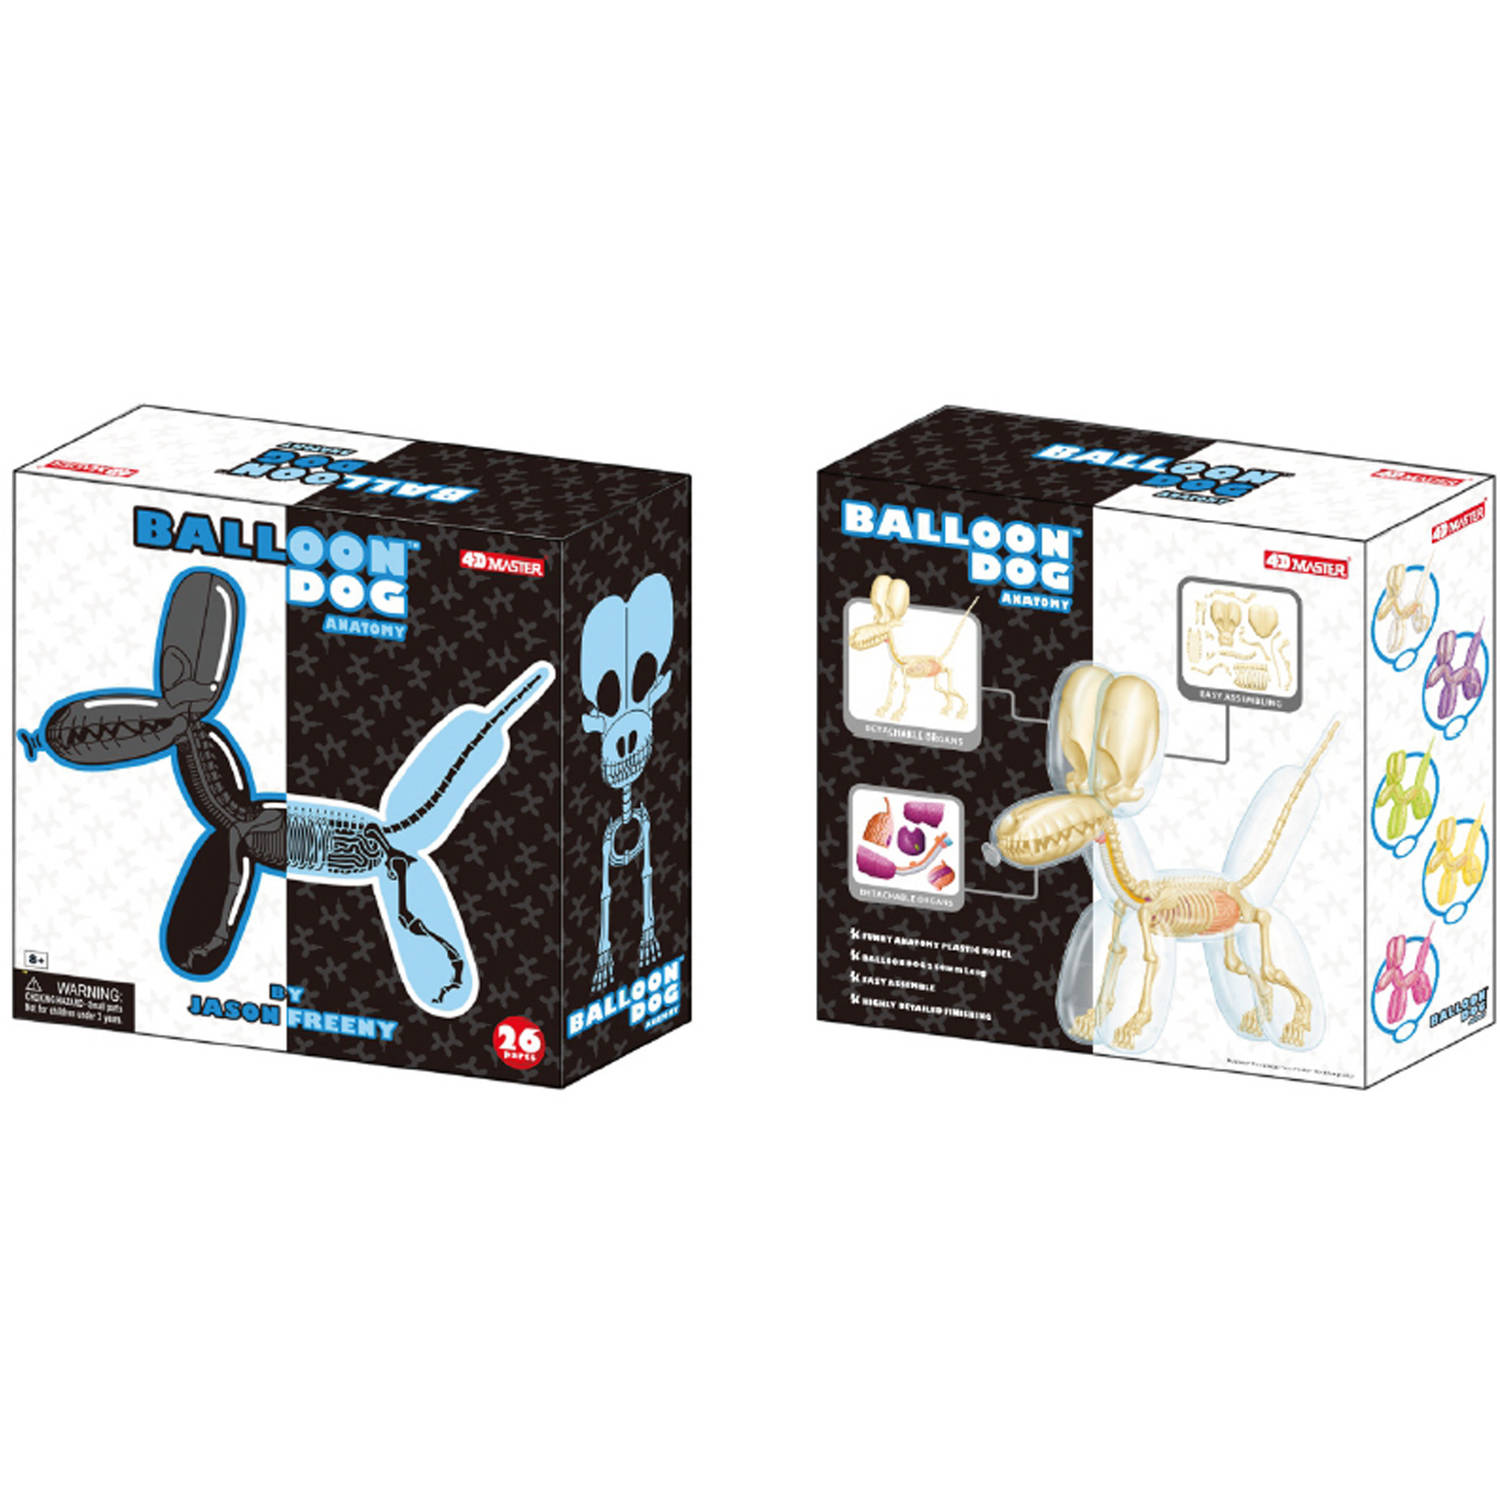 4D Vision Balloon Dog Anatomy Model by 4D Master